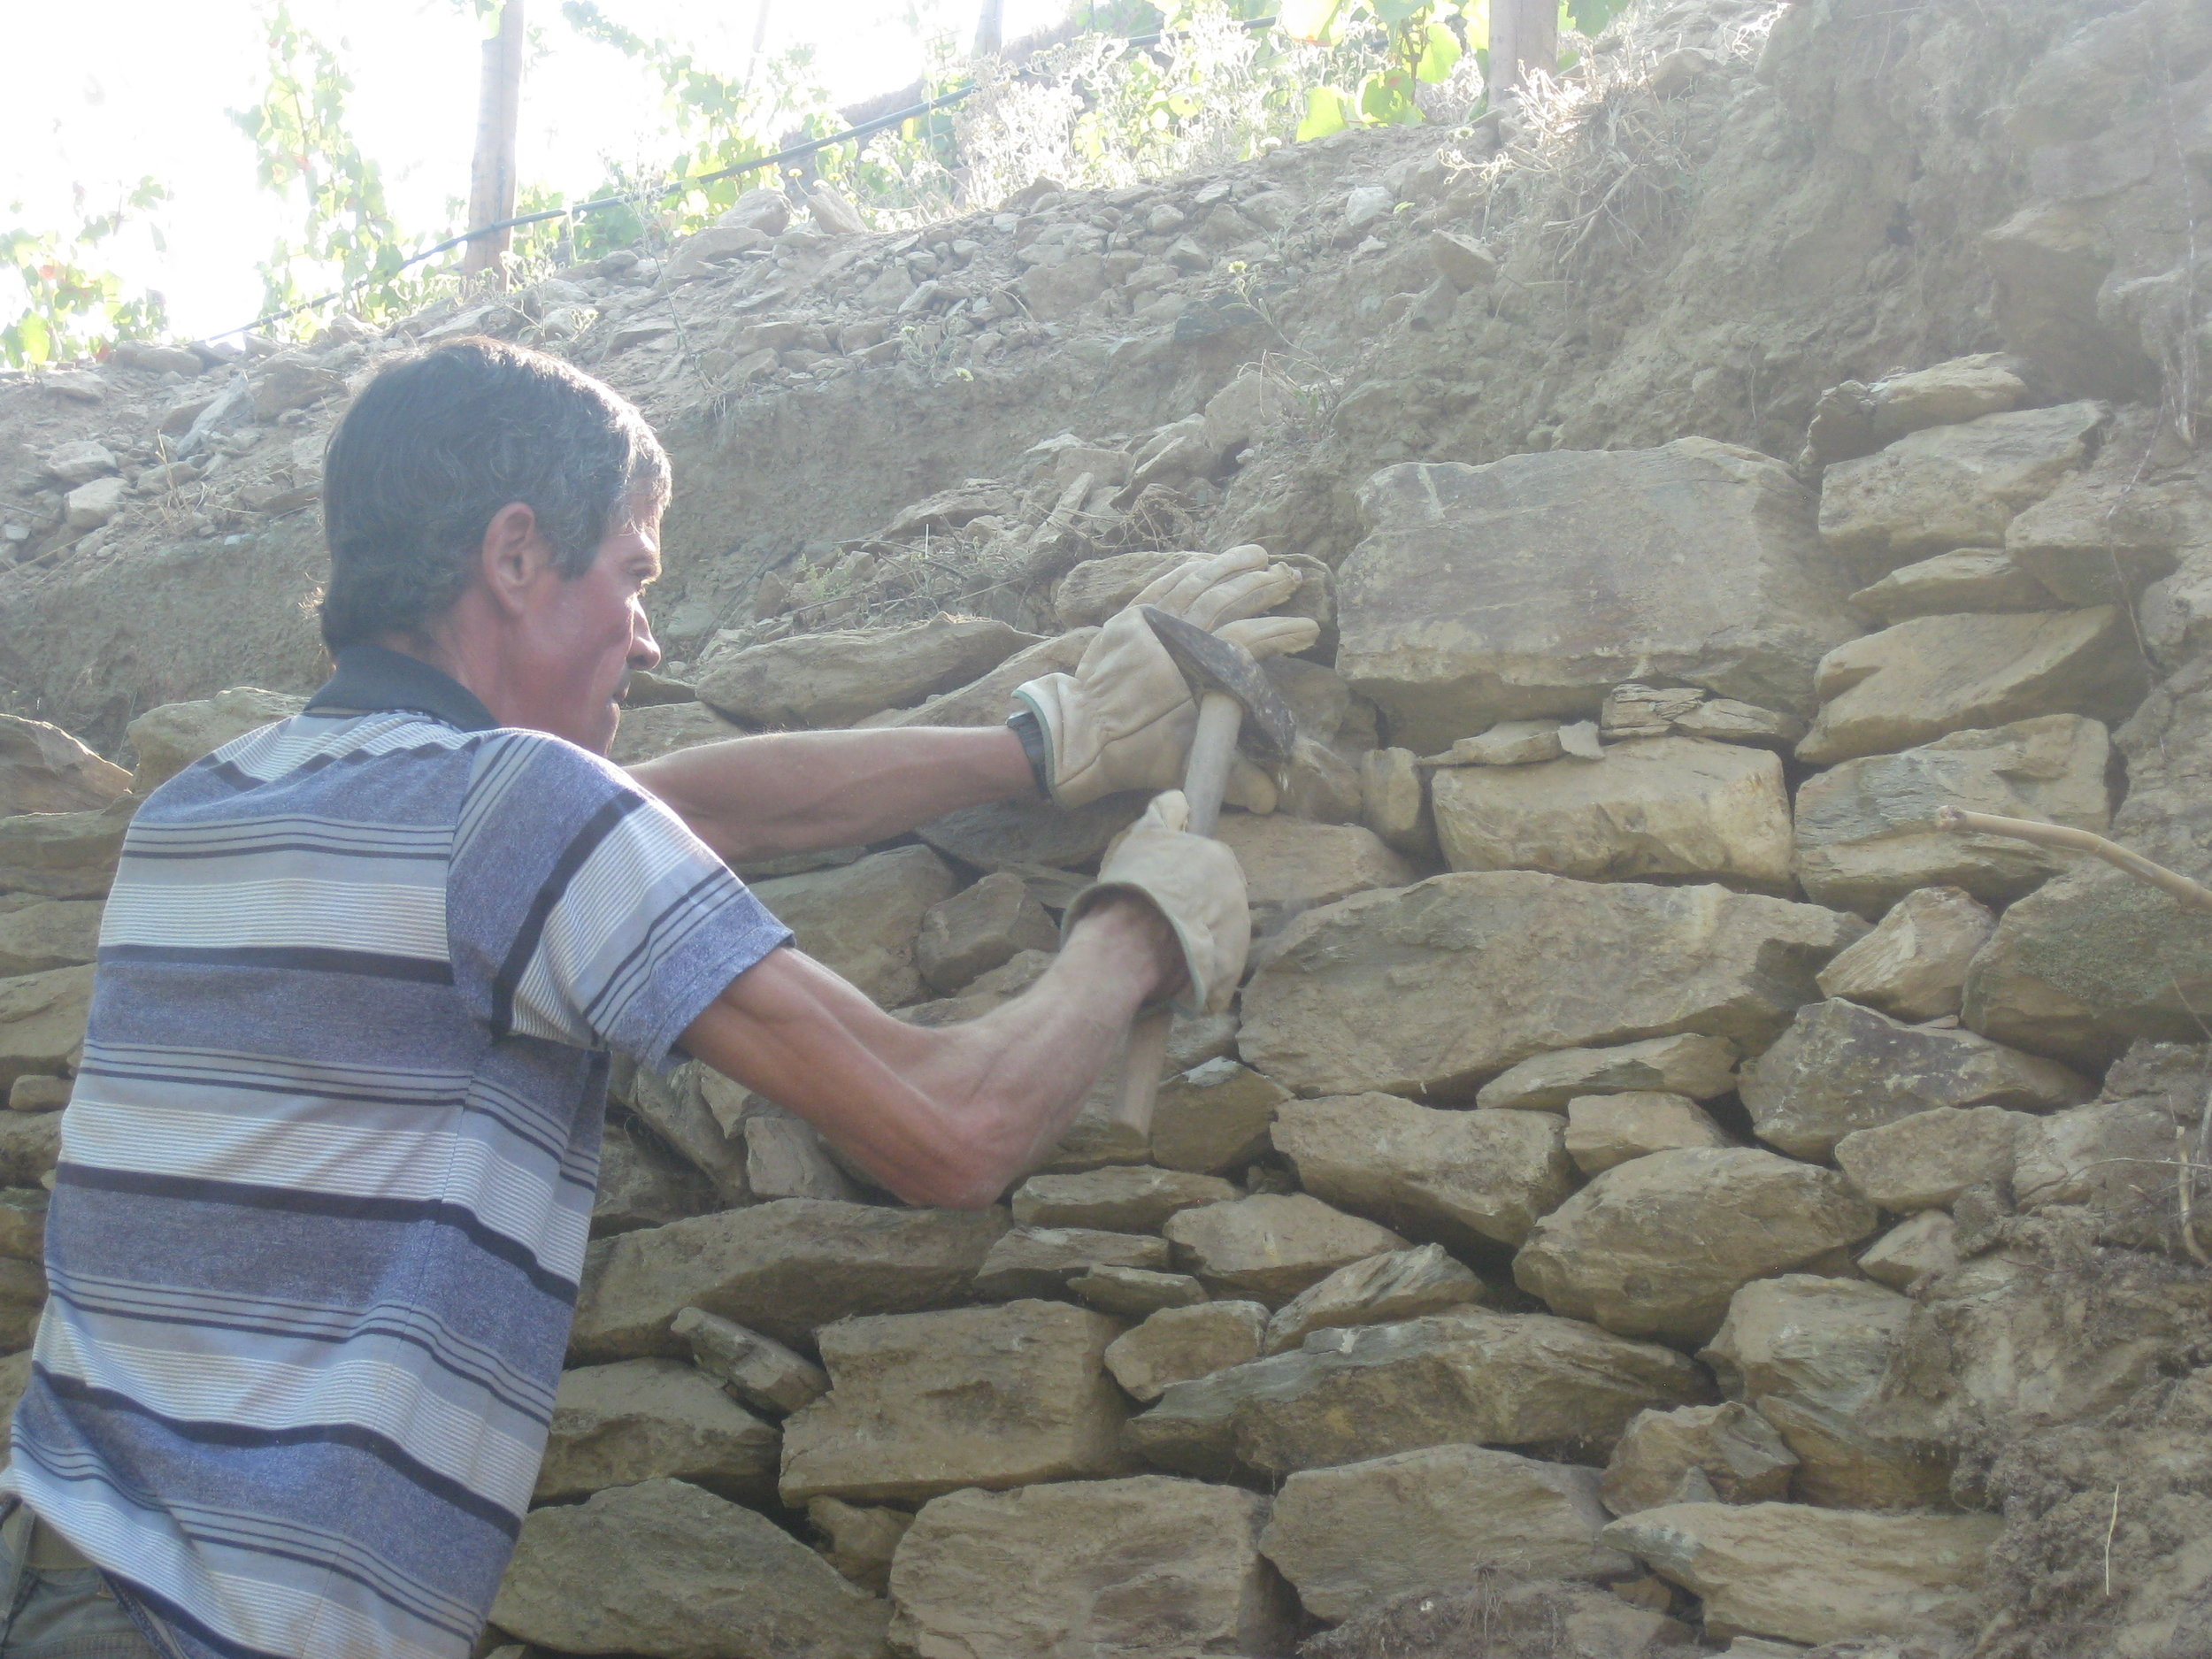 Filling in with smaller rocks for strengthening walls.